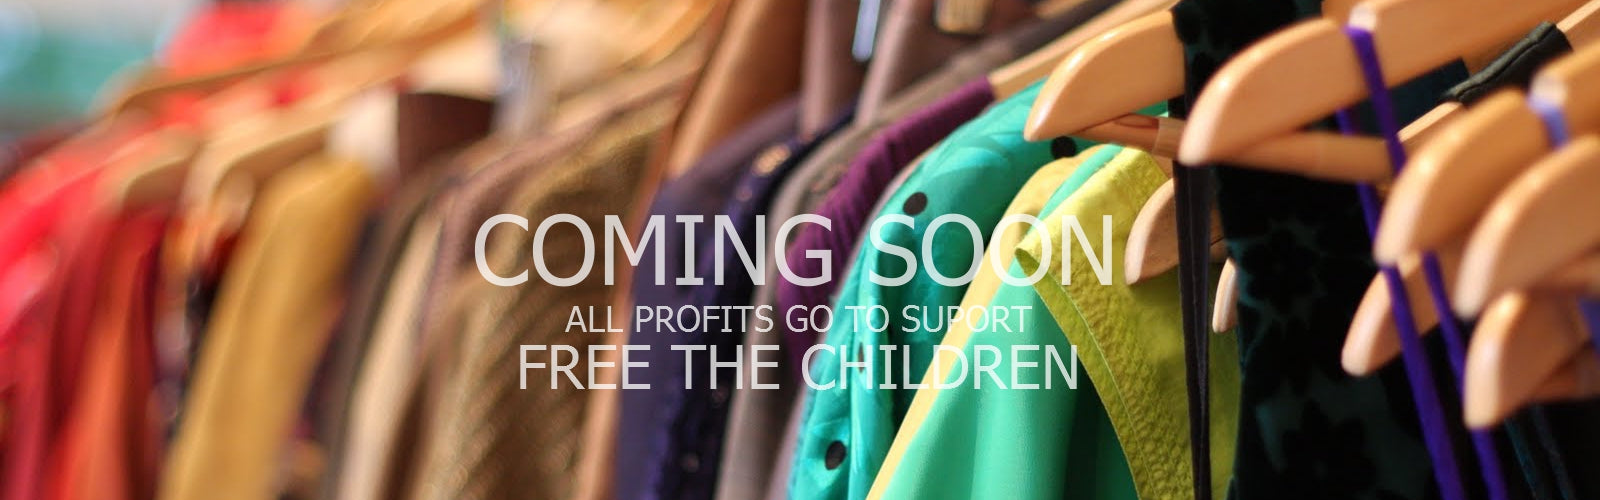 Coming soon Free the children